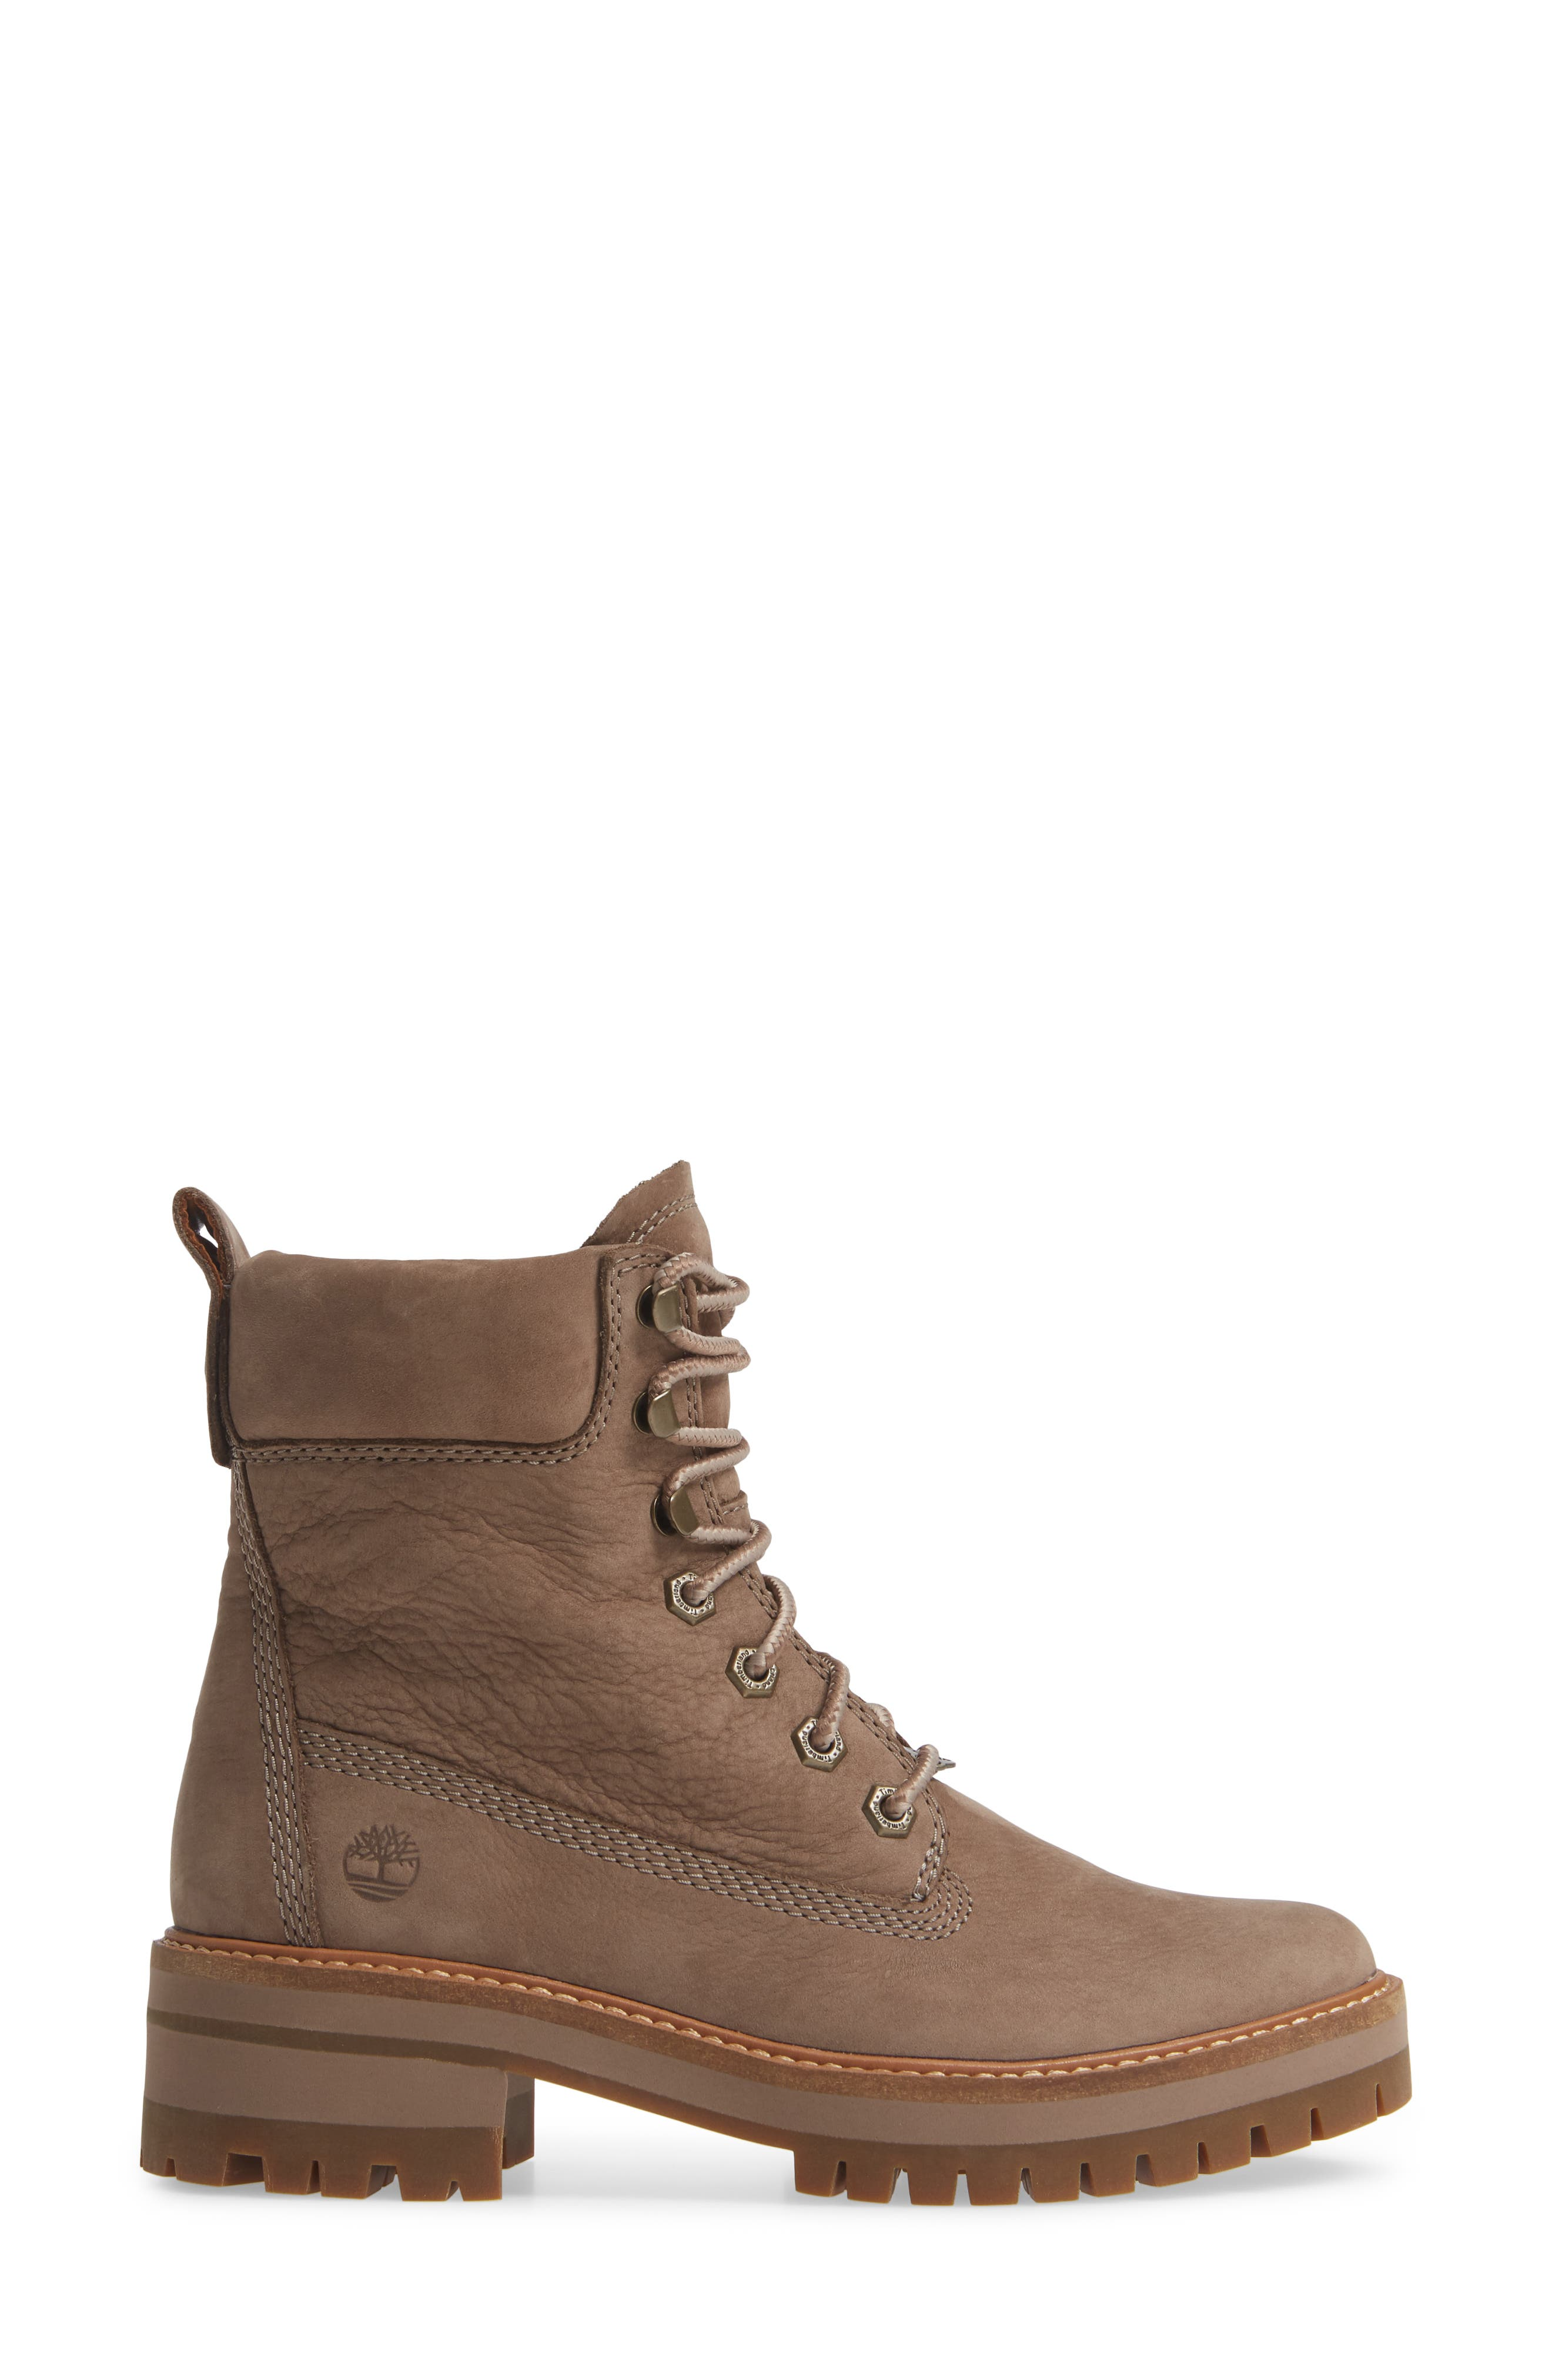 TIMBERLAND, Courmayeur Valley Water Resistant Hiking Boot, Alternate thumbnail 3, color, TAUPE GREY NUBUCK